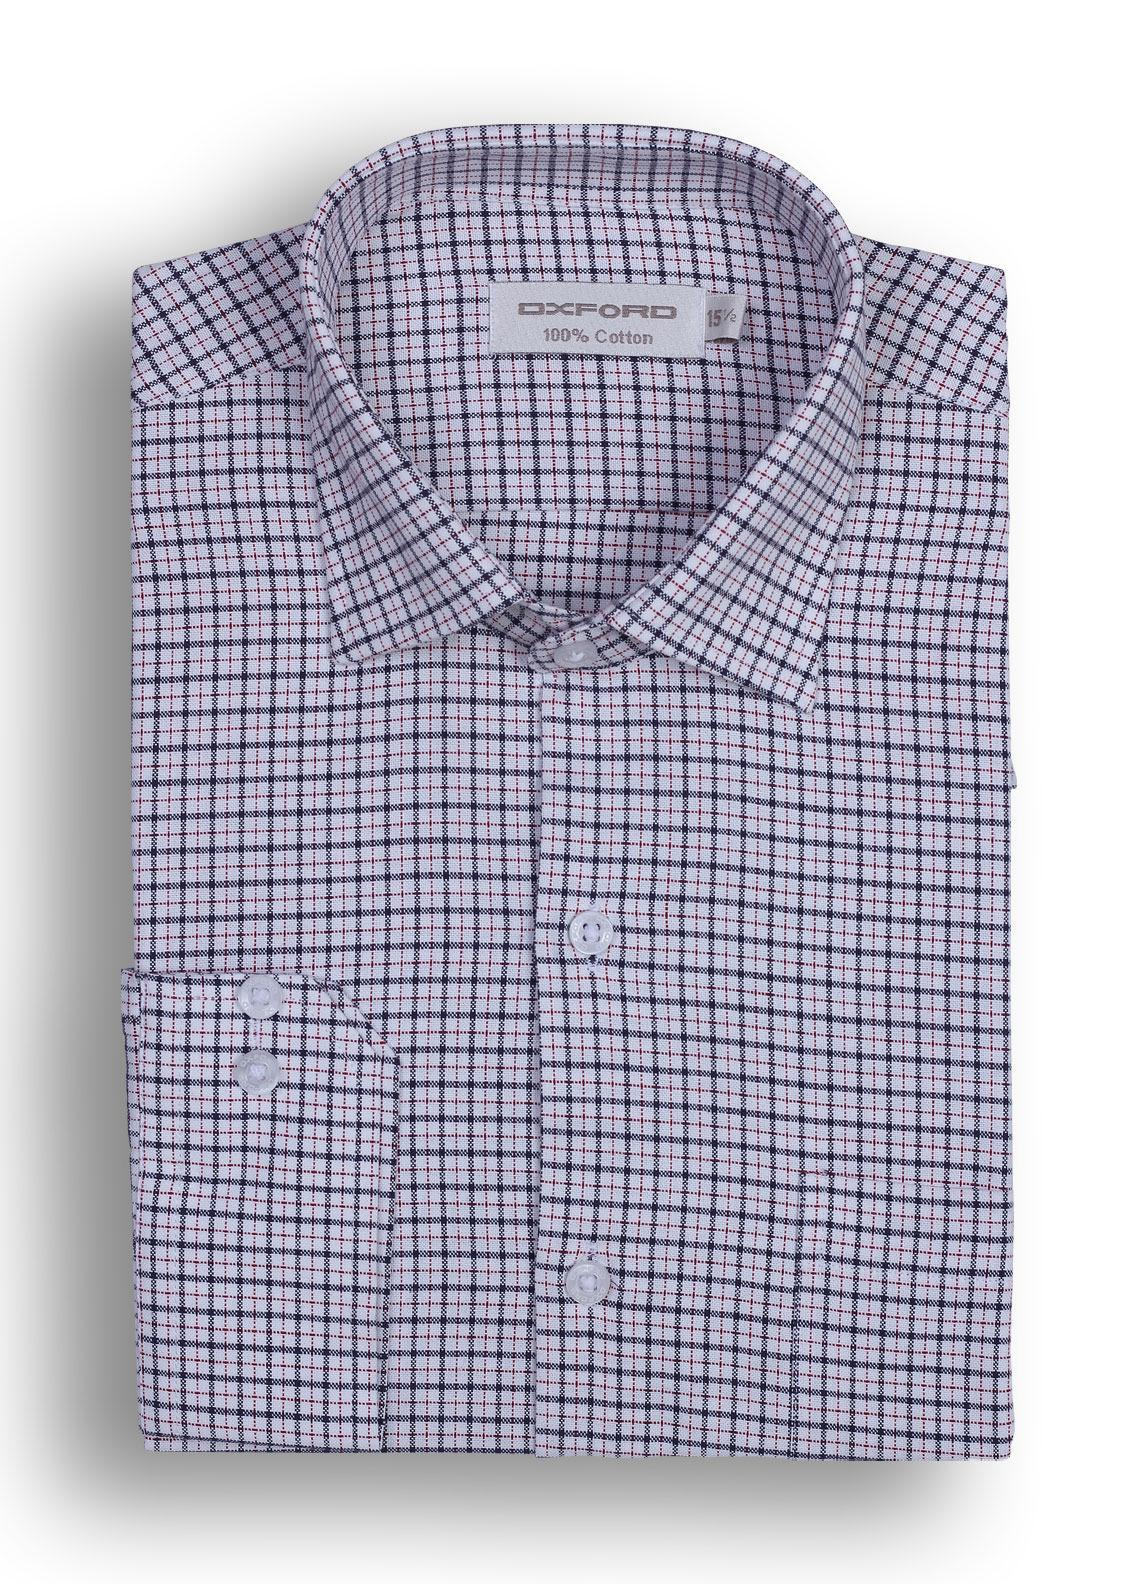 Buy Oxford Cotton Checked Shirts for Men   Black Mens formal ...